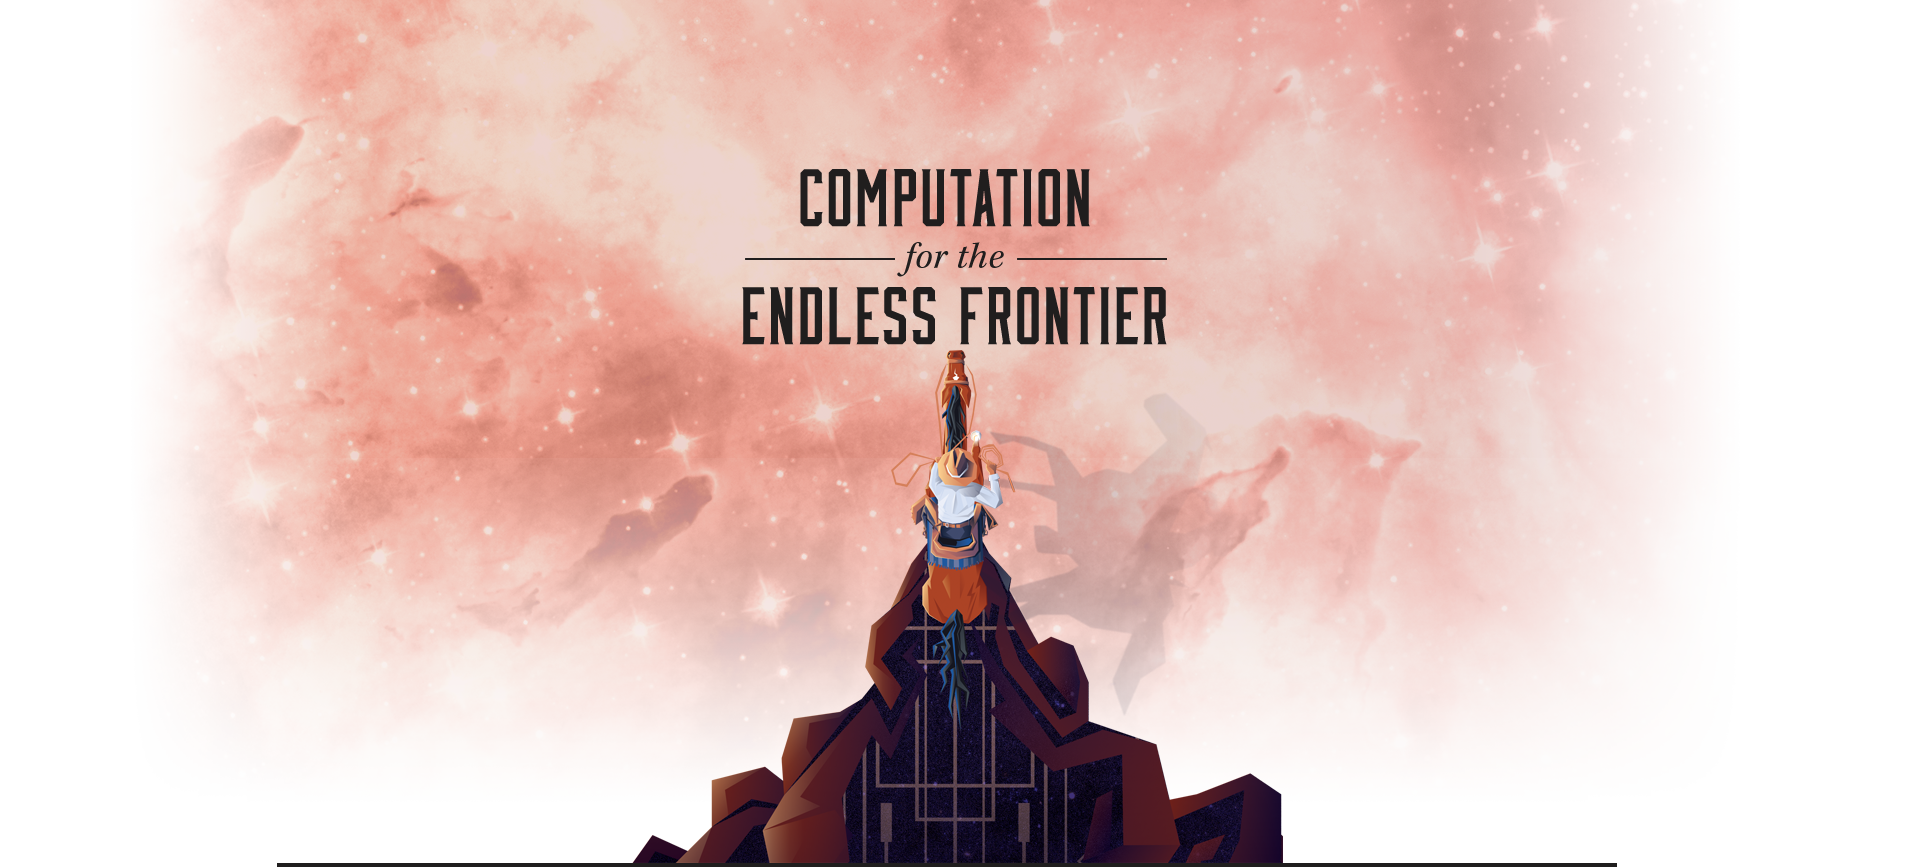 Computation for the Endless Frontier